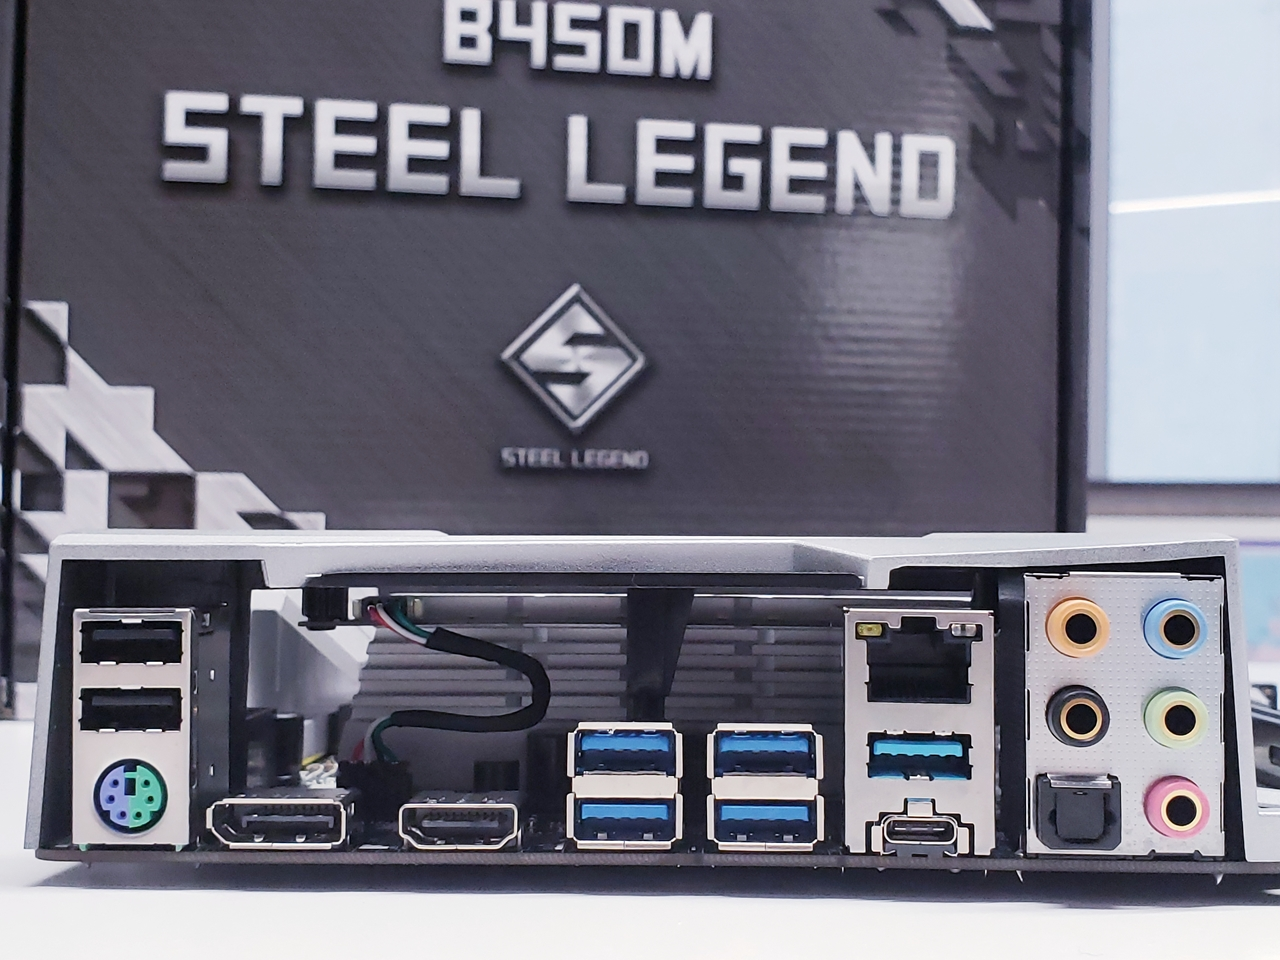 ASRock B450M Steel Legend (AM4) Motherboard Review - Page 8 of 8